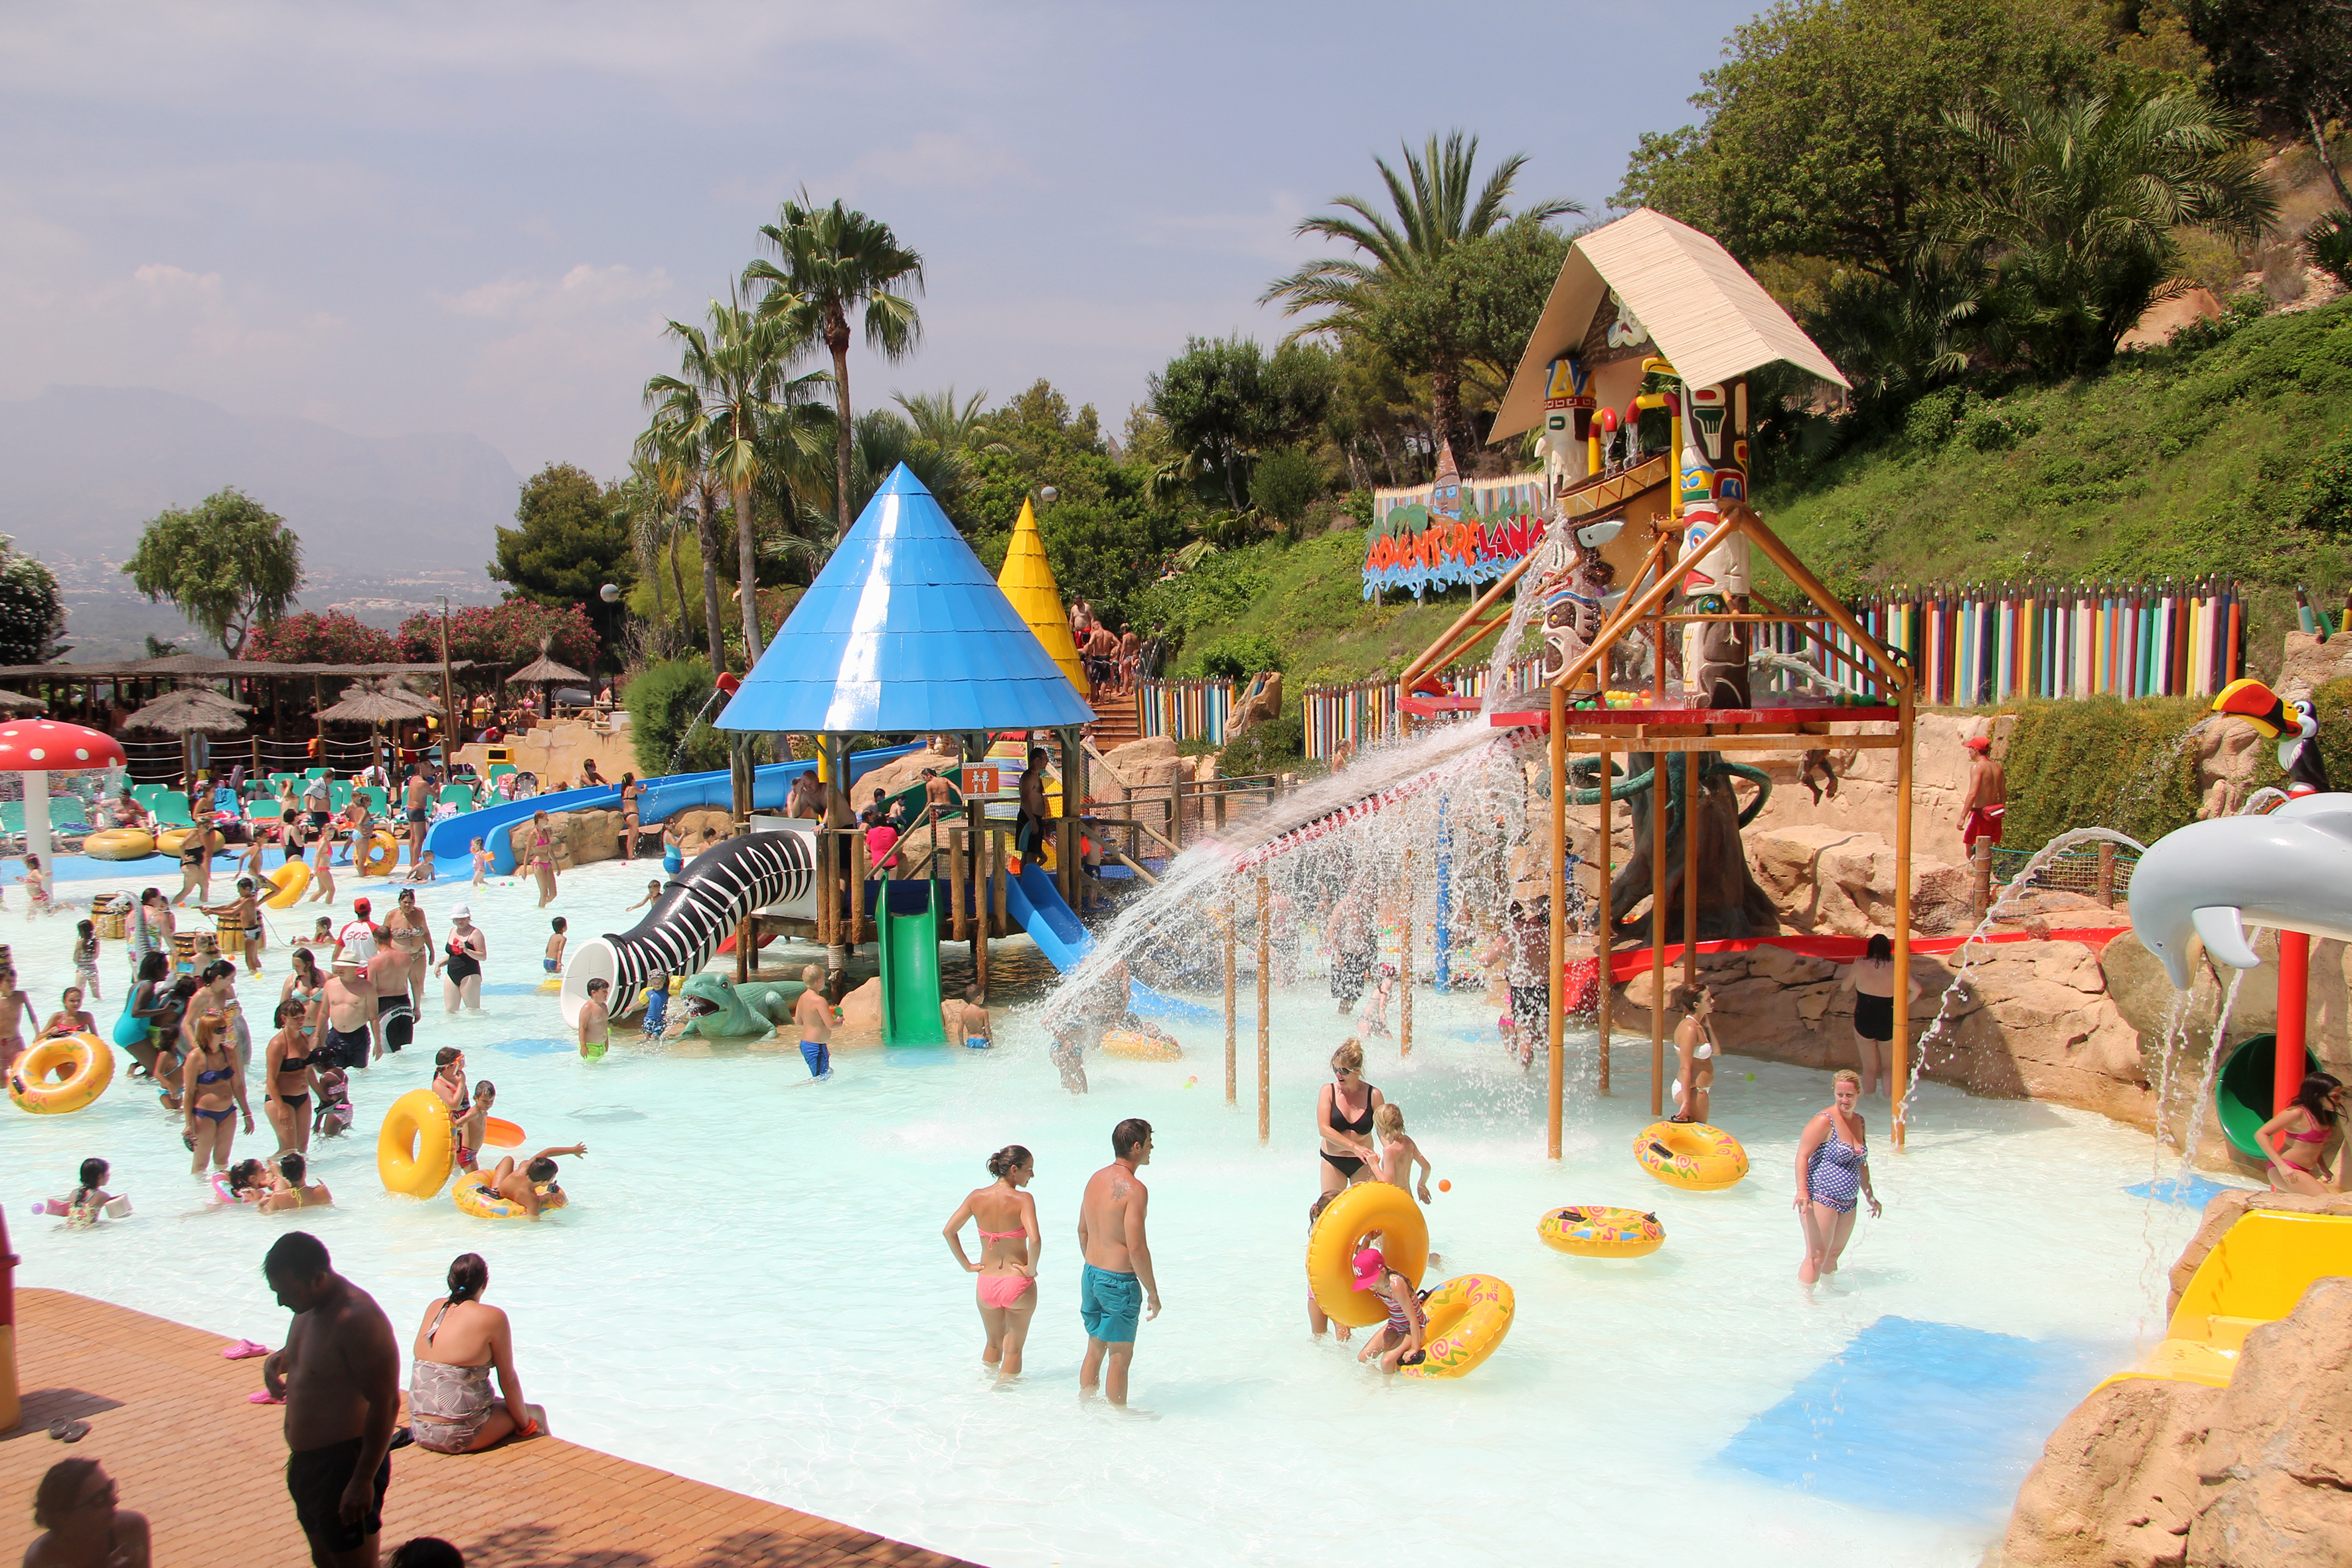 What Should I Take to Spend a Day in a Water Park?